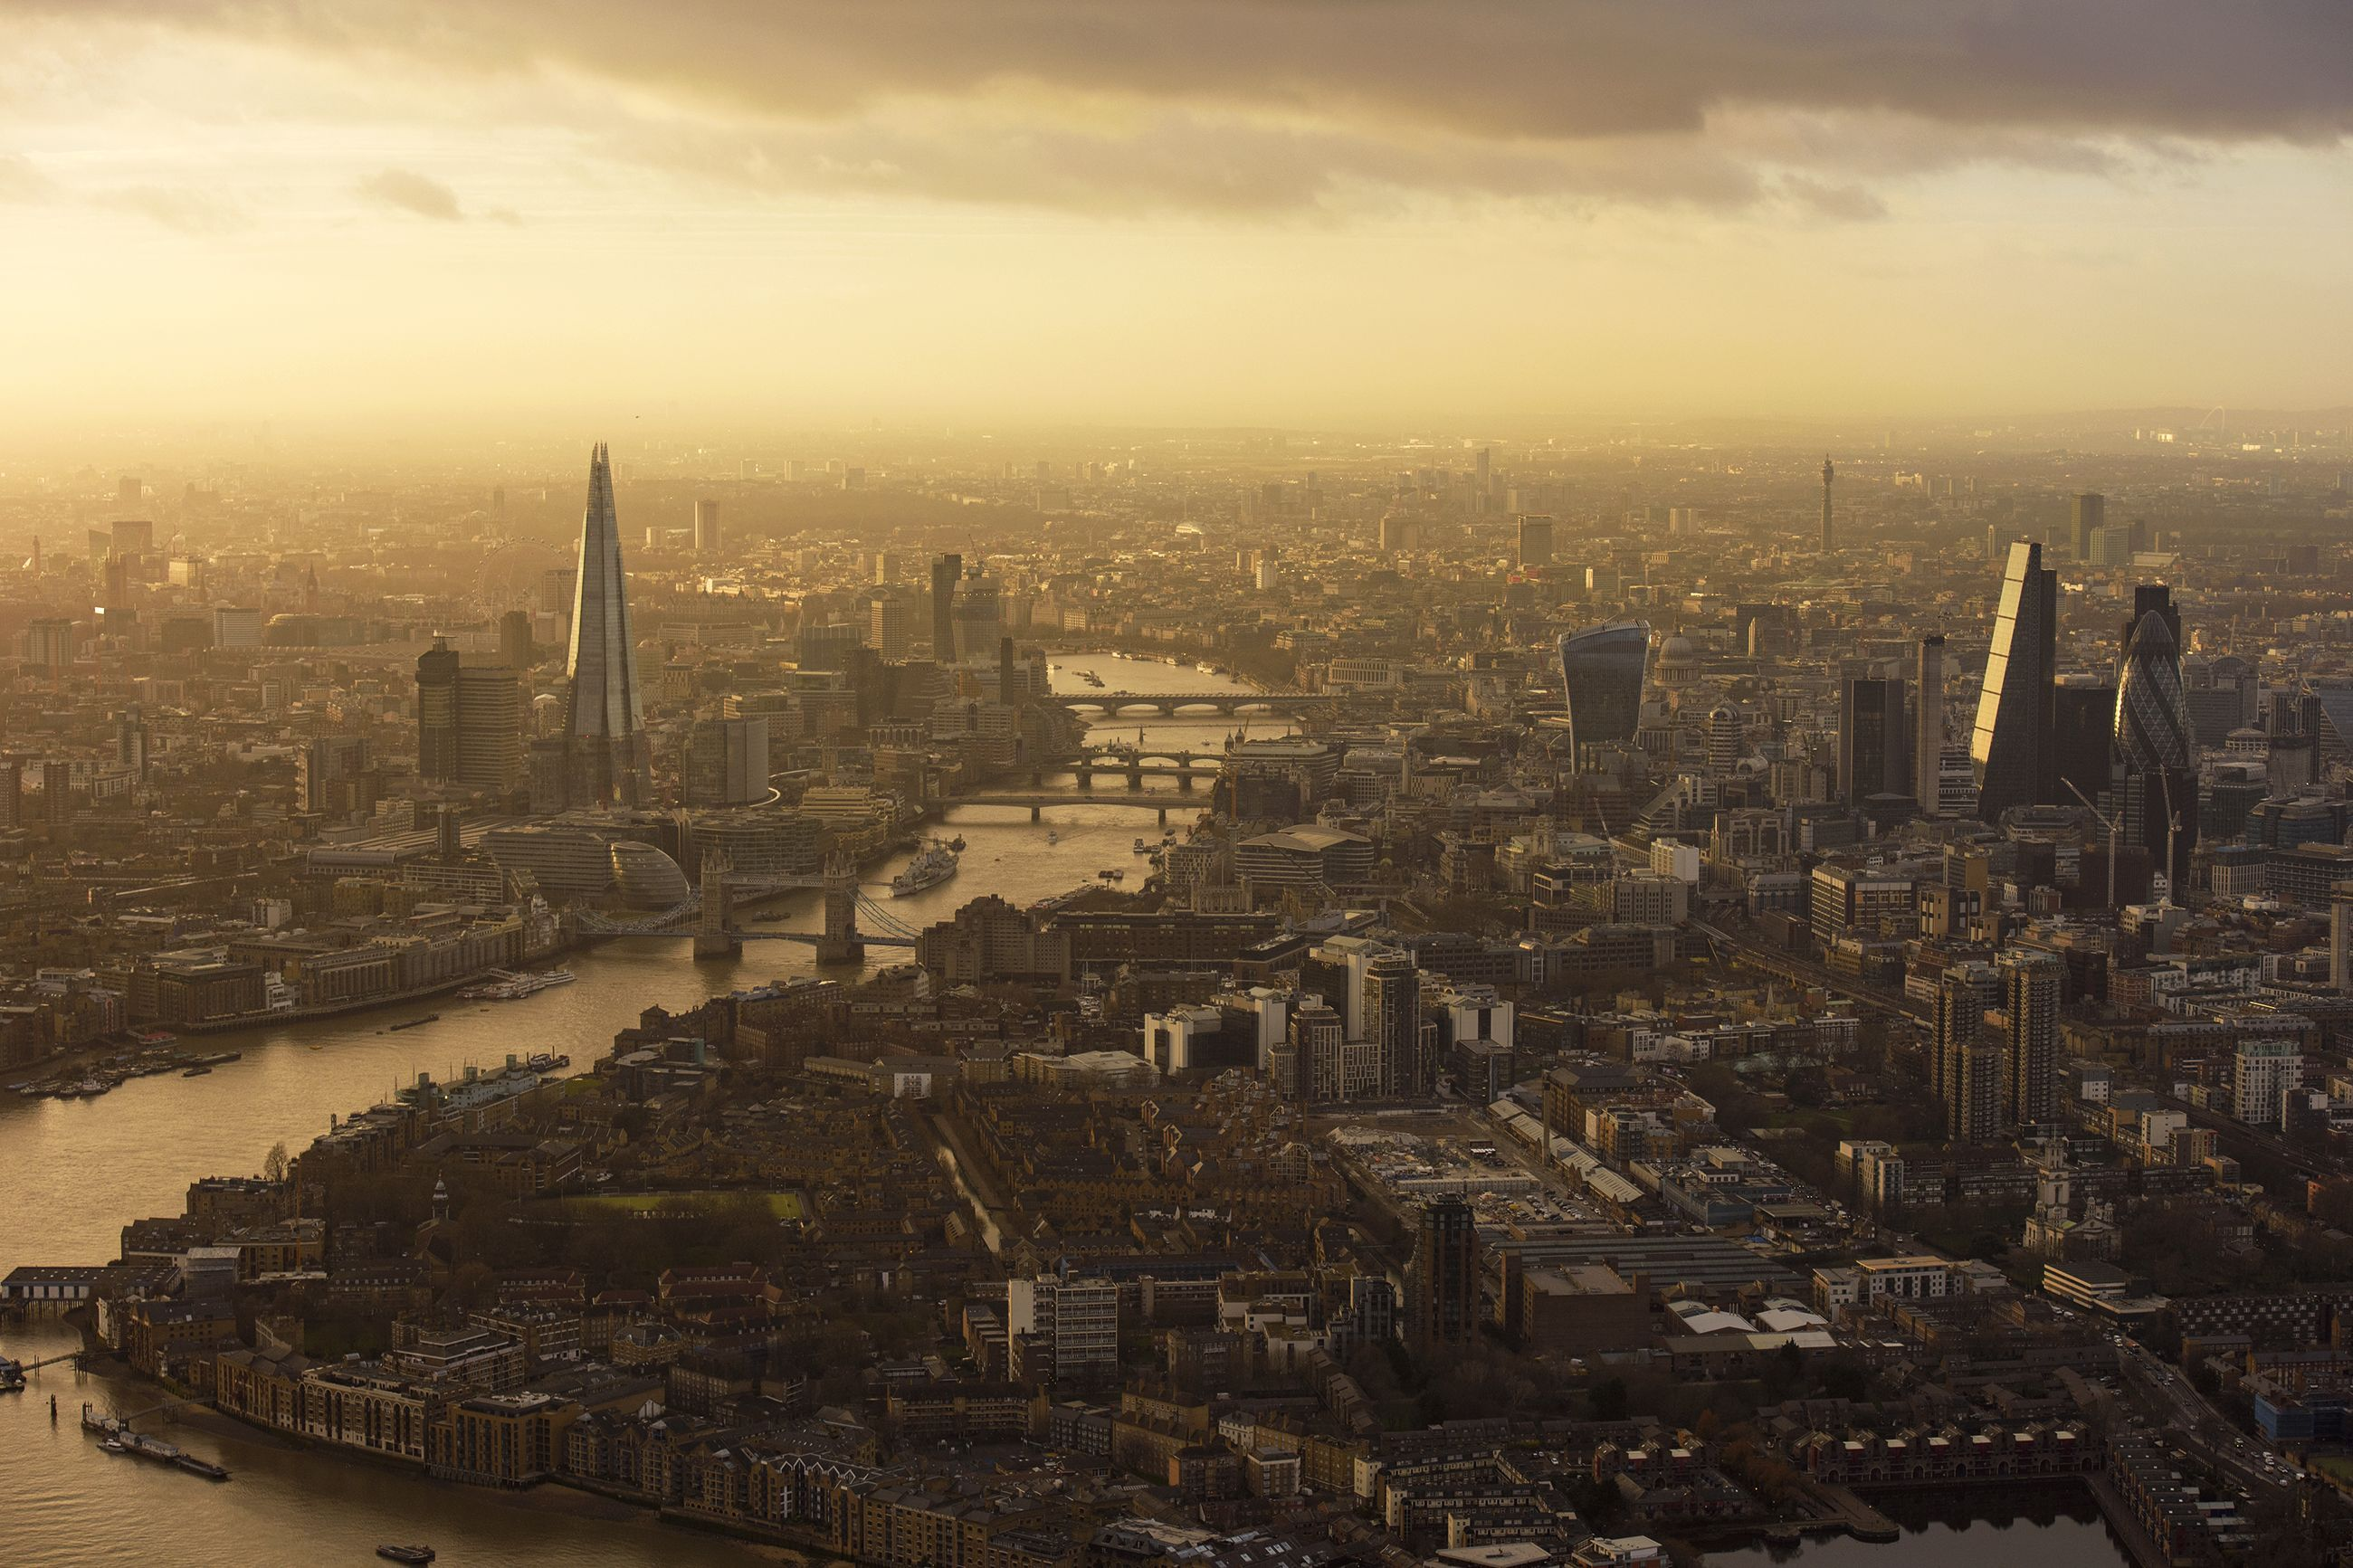 A haze covers London during golden hour one January day. The tall building on the left is known as The Shard. At 95 stories high, it's the tallest building in the United Kingdom.